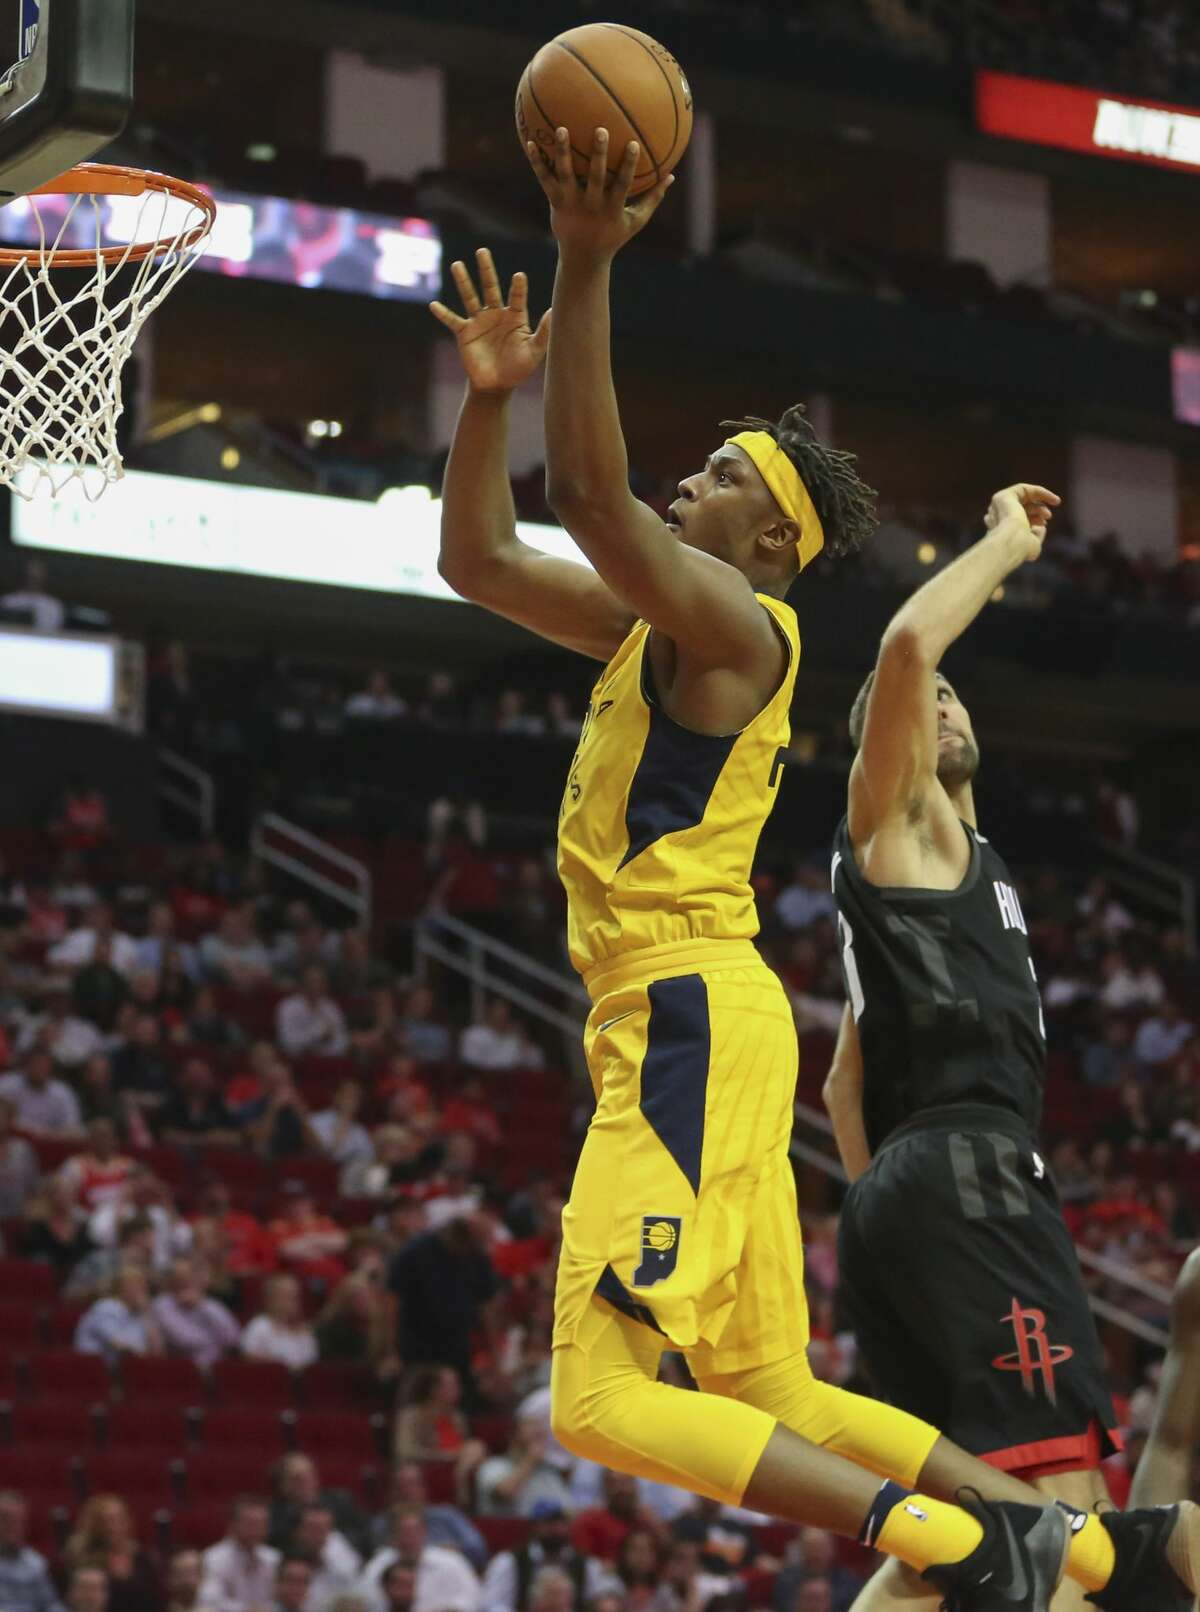 Indiana Pacers center Myles Turner (33) passes Houston Rockets forward Ryan Anderson (33) to score a basket during the fourth quarter of a NBA game at Toyota Center on Wednesday, Nov. 29, 2017, in Houston. The Houston Rockets defeated the Indiana Pacers 118-97. ( Yi-Chin Lee / Houston Chronicle )